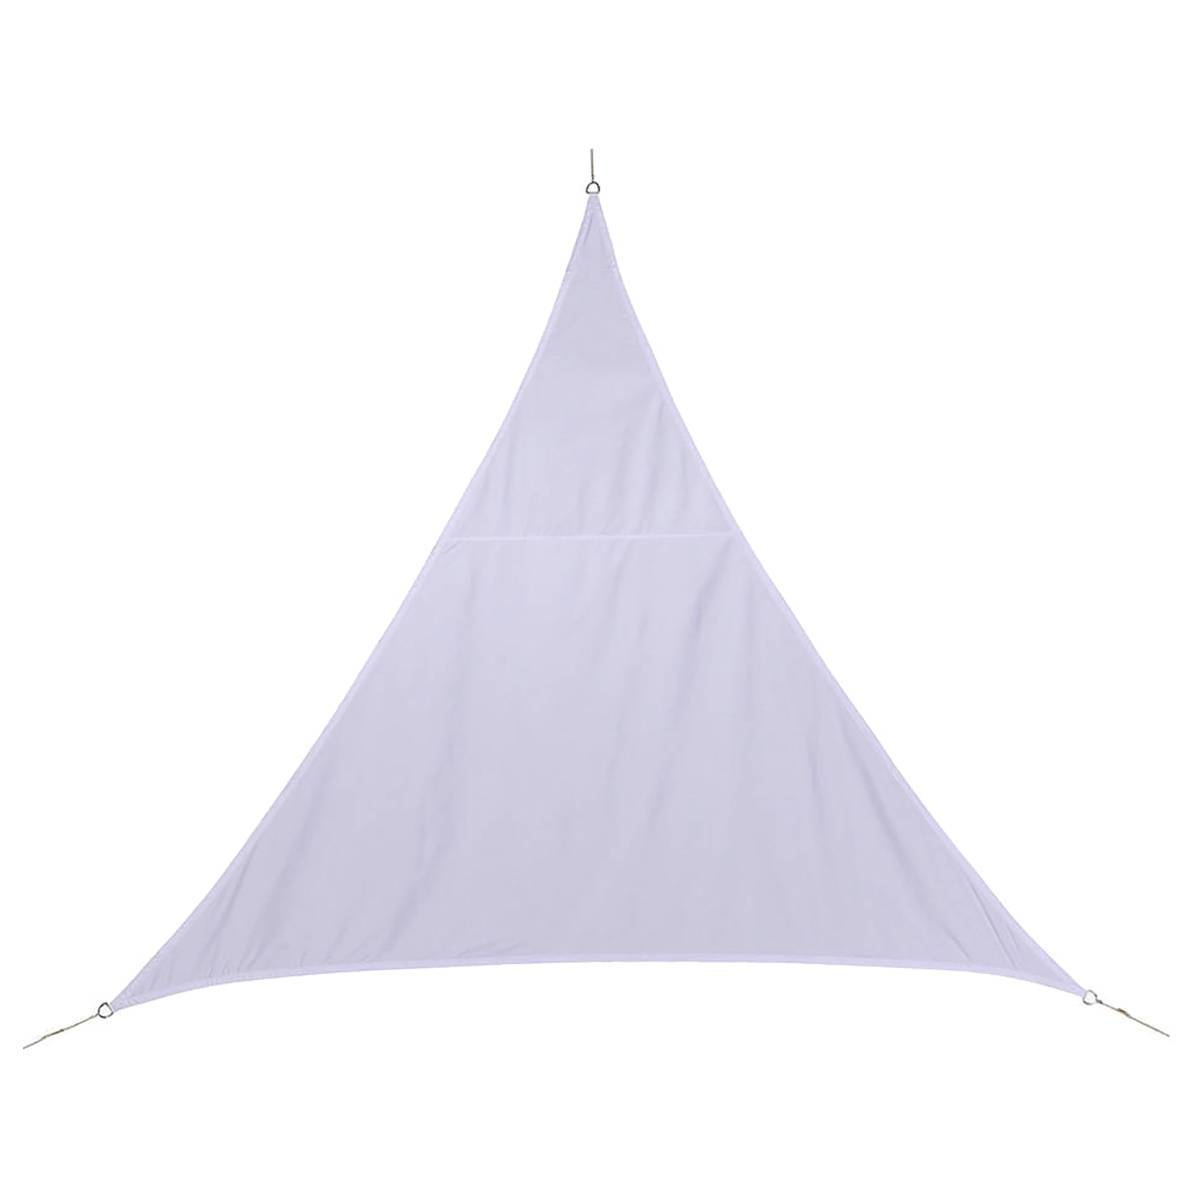 Hespéride Voile d'ombrage triangulaire Curacao Blanc Jardin 5 x 5 x 5 m - Polyester